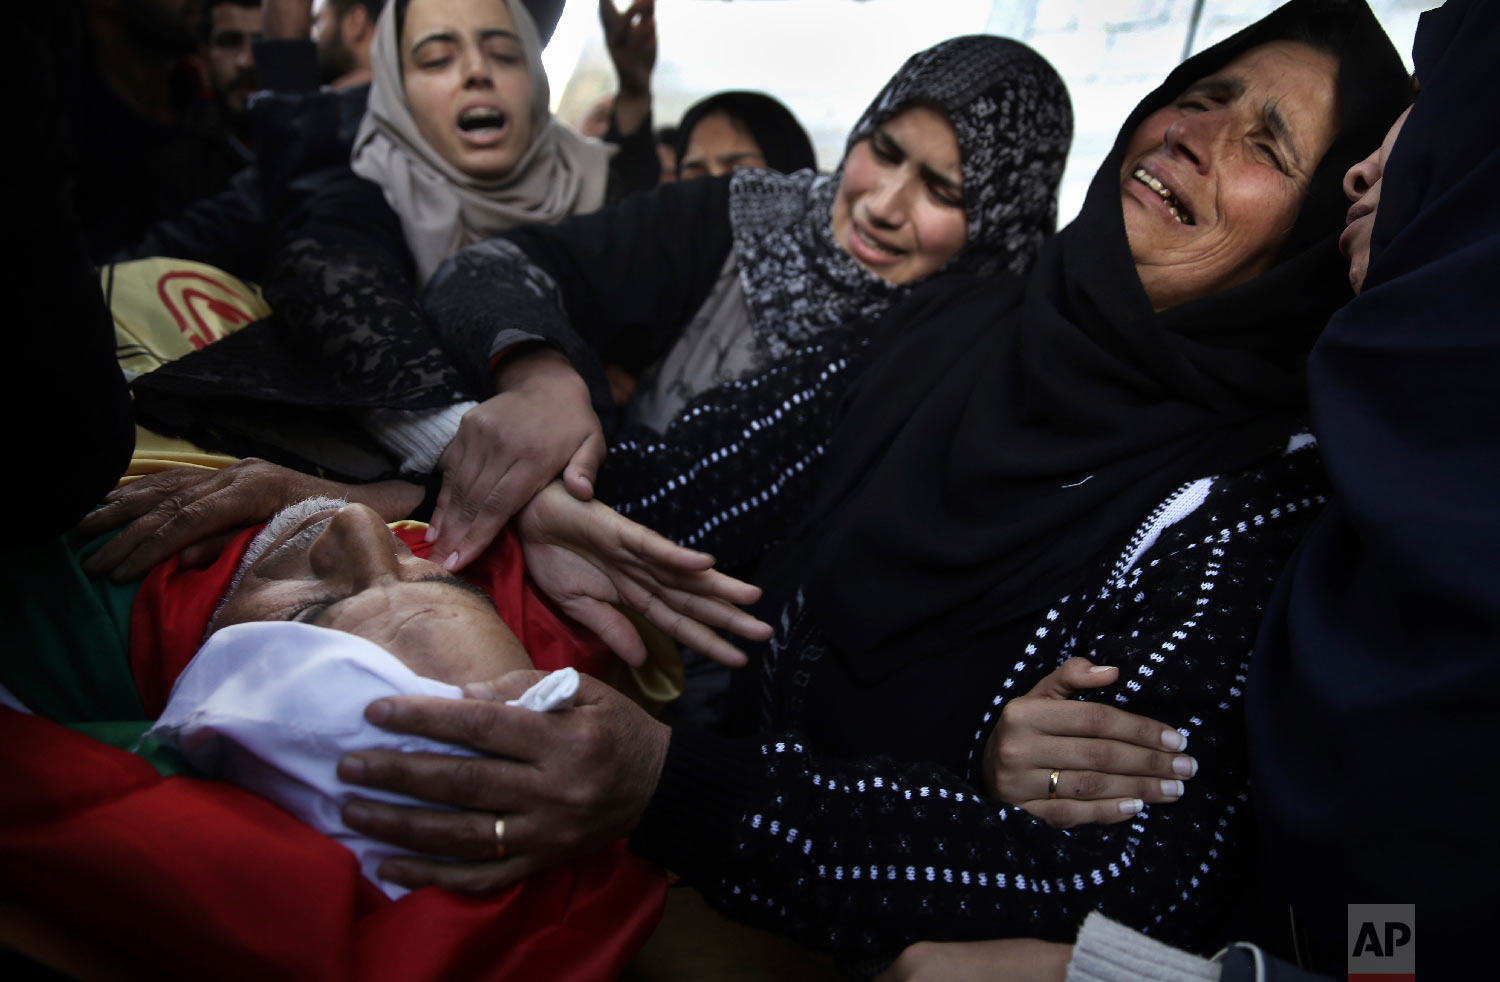 Relatives of Palestinian 59-year-old farmer, Muhammed Abu Jamaa, mourn over his body in the family house during his funeral in town of Khan Younis, southern Gaza Strip, Sunday, March 4, 2018. (AP Photo/ Khalil Hamra)